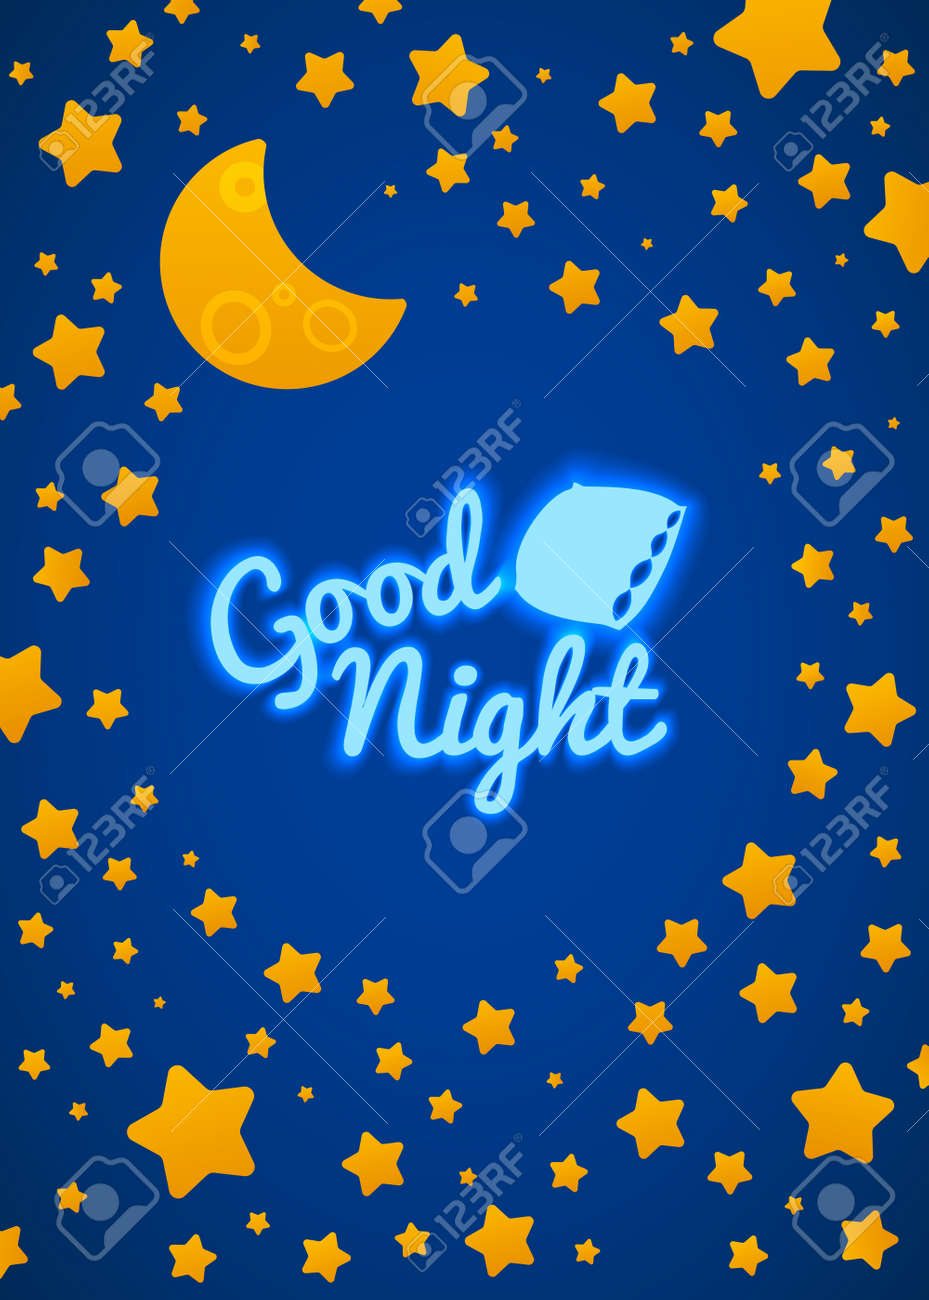 Kids at night with moon royalty free stock photography image - Good Night Bed Time Illustration For Children Stars Moon Pillow And Inscription Stock